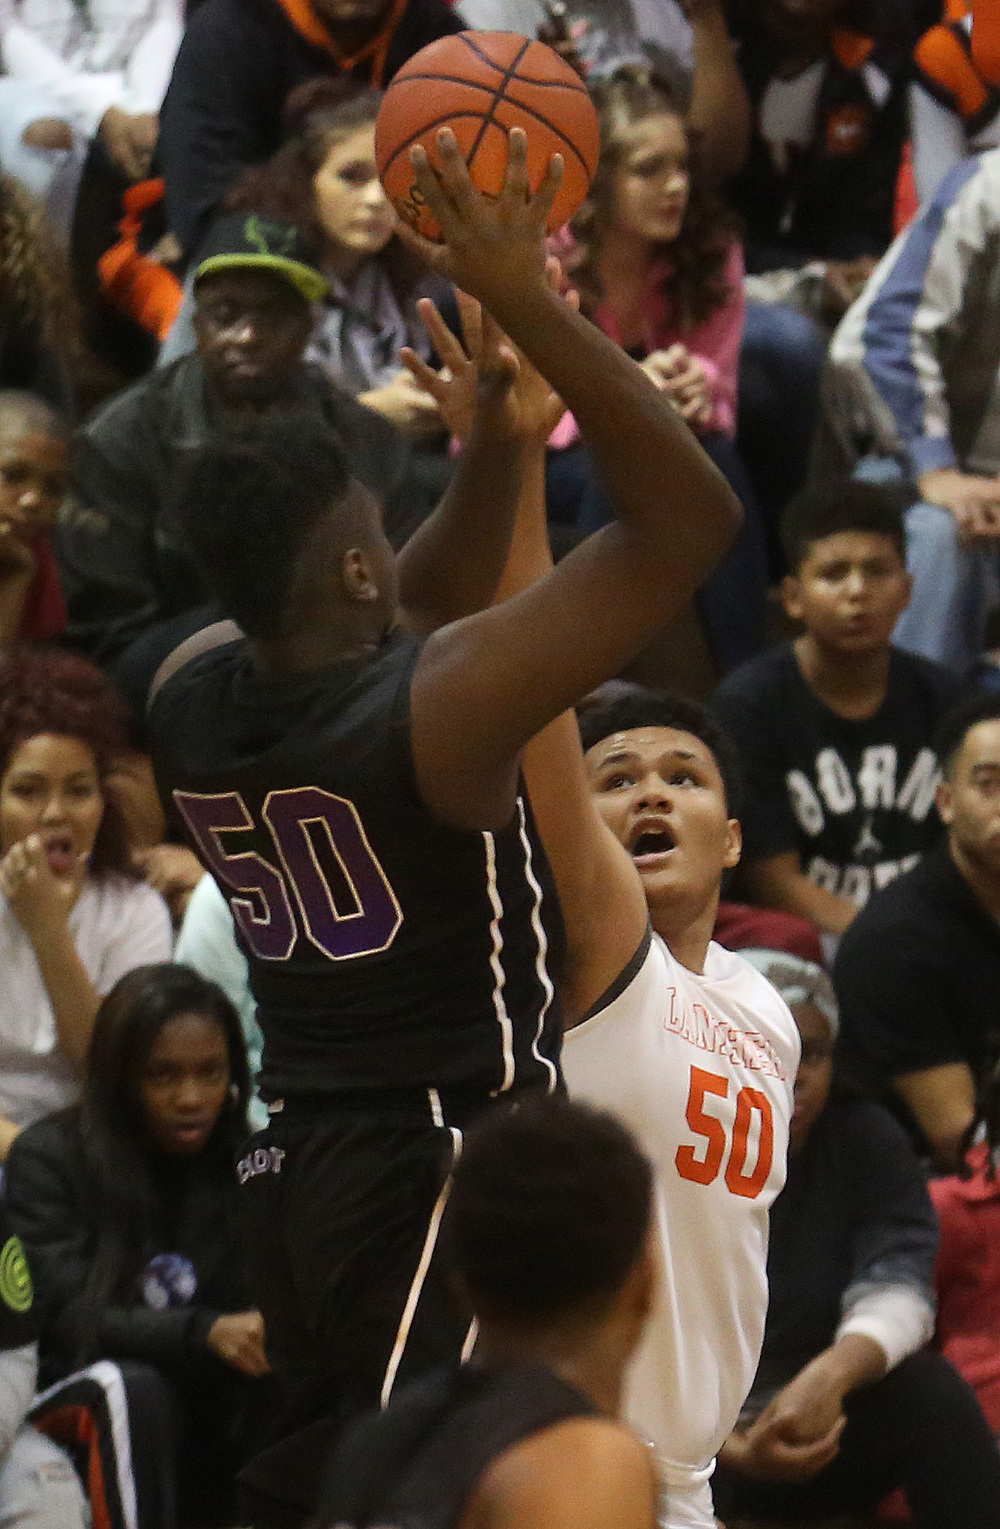 Cadets player Duane Clark shoots over Lanphier defender William Boles. David Spencer/The State Journal-Register